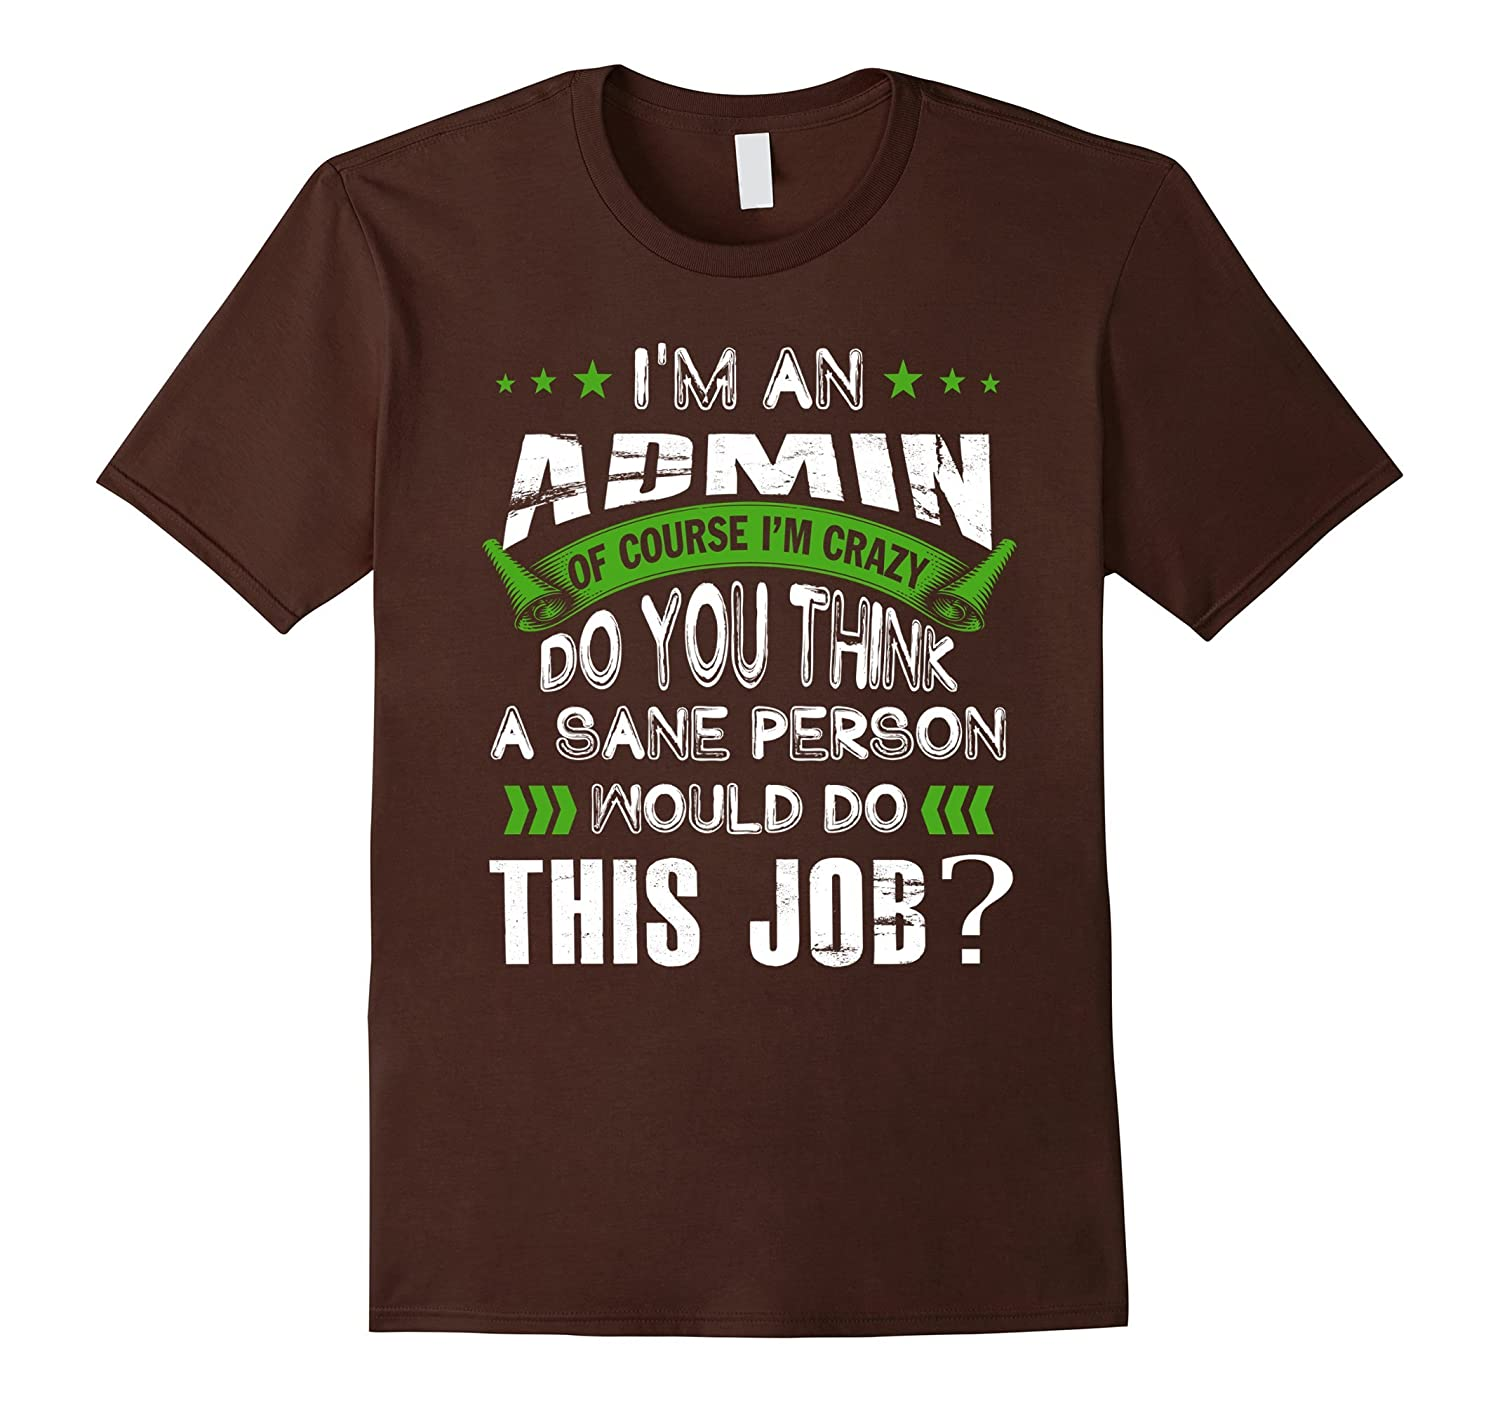 ADMIN is crazy do you think a sane person would this job-TJ